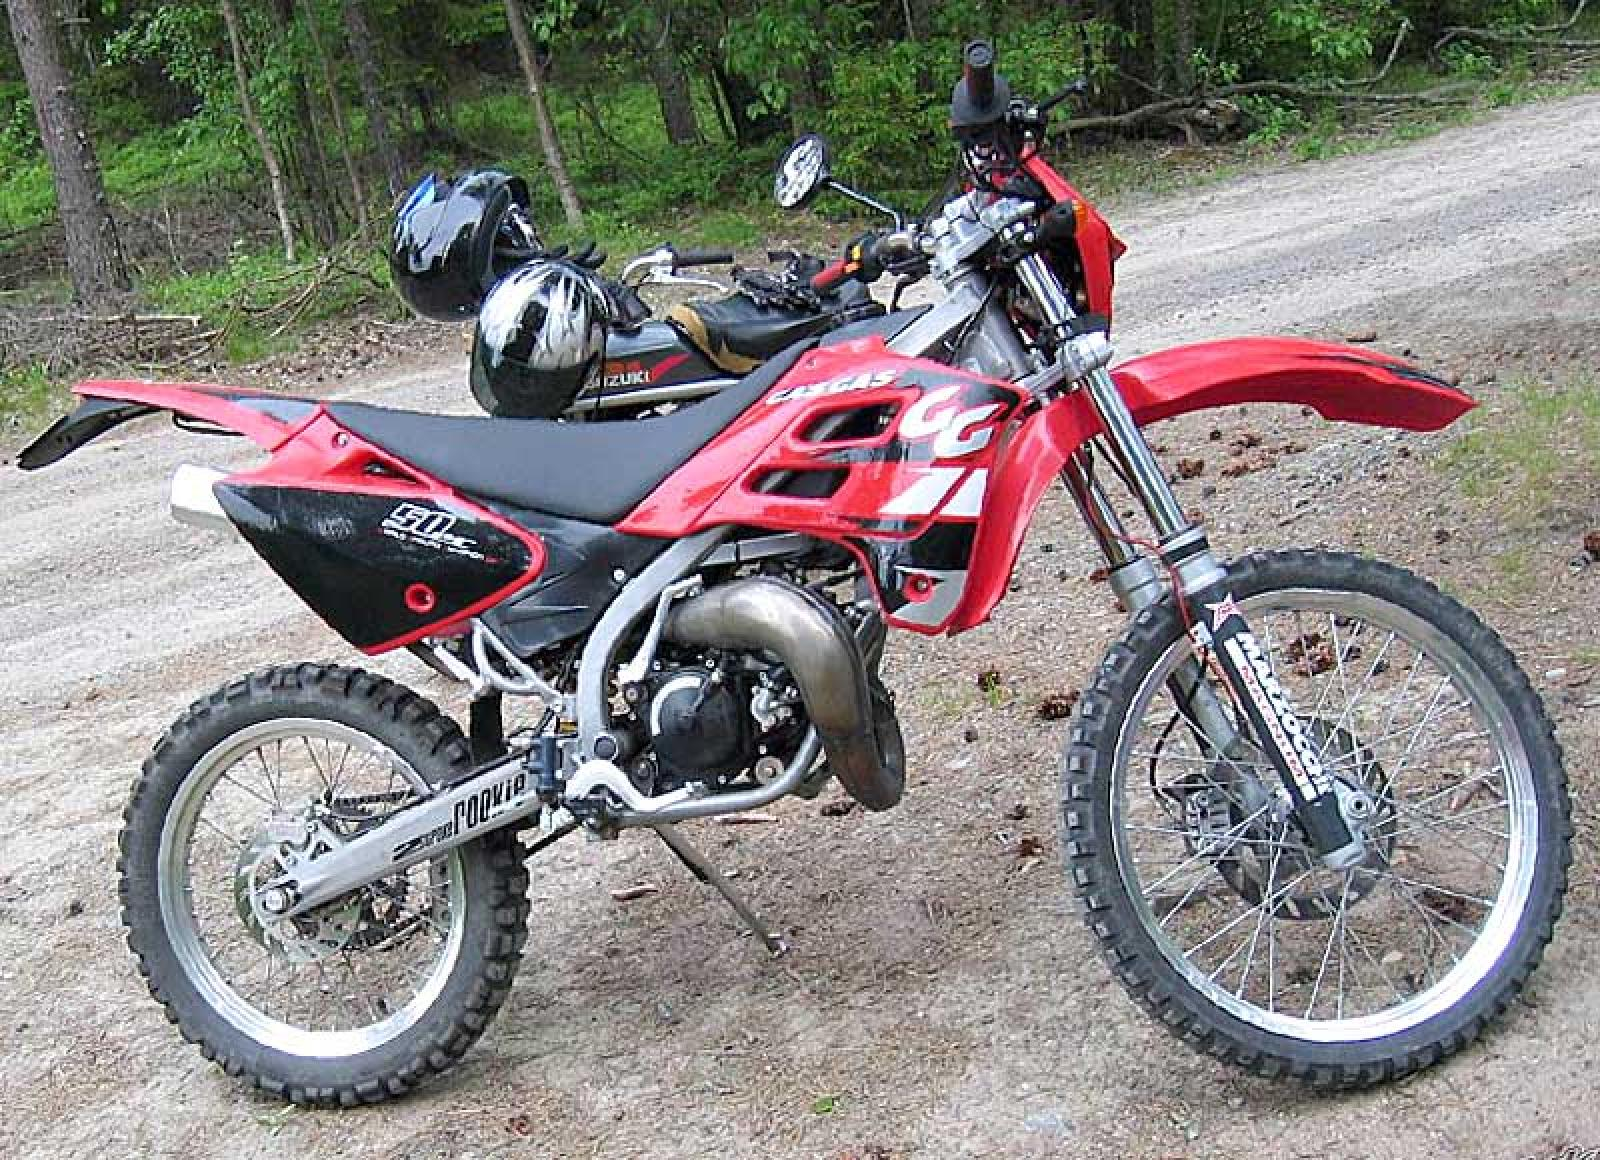 GAS GAS EC 50 Rookie 2002 images #94415